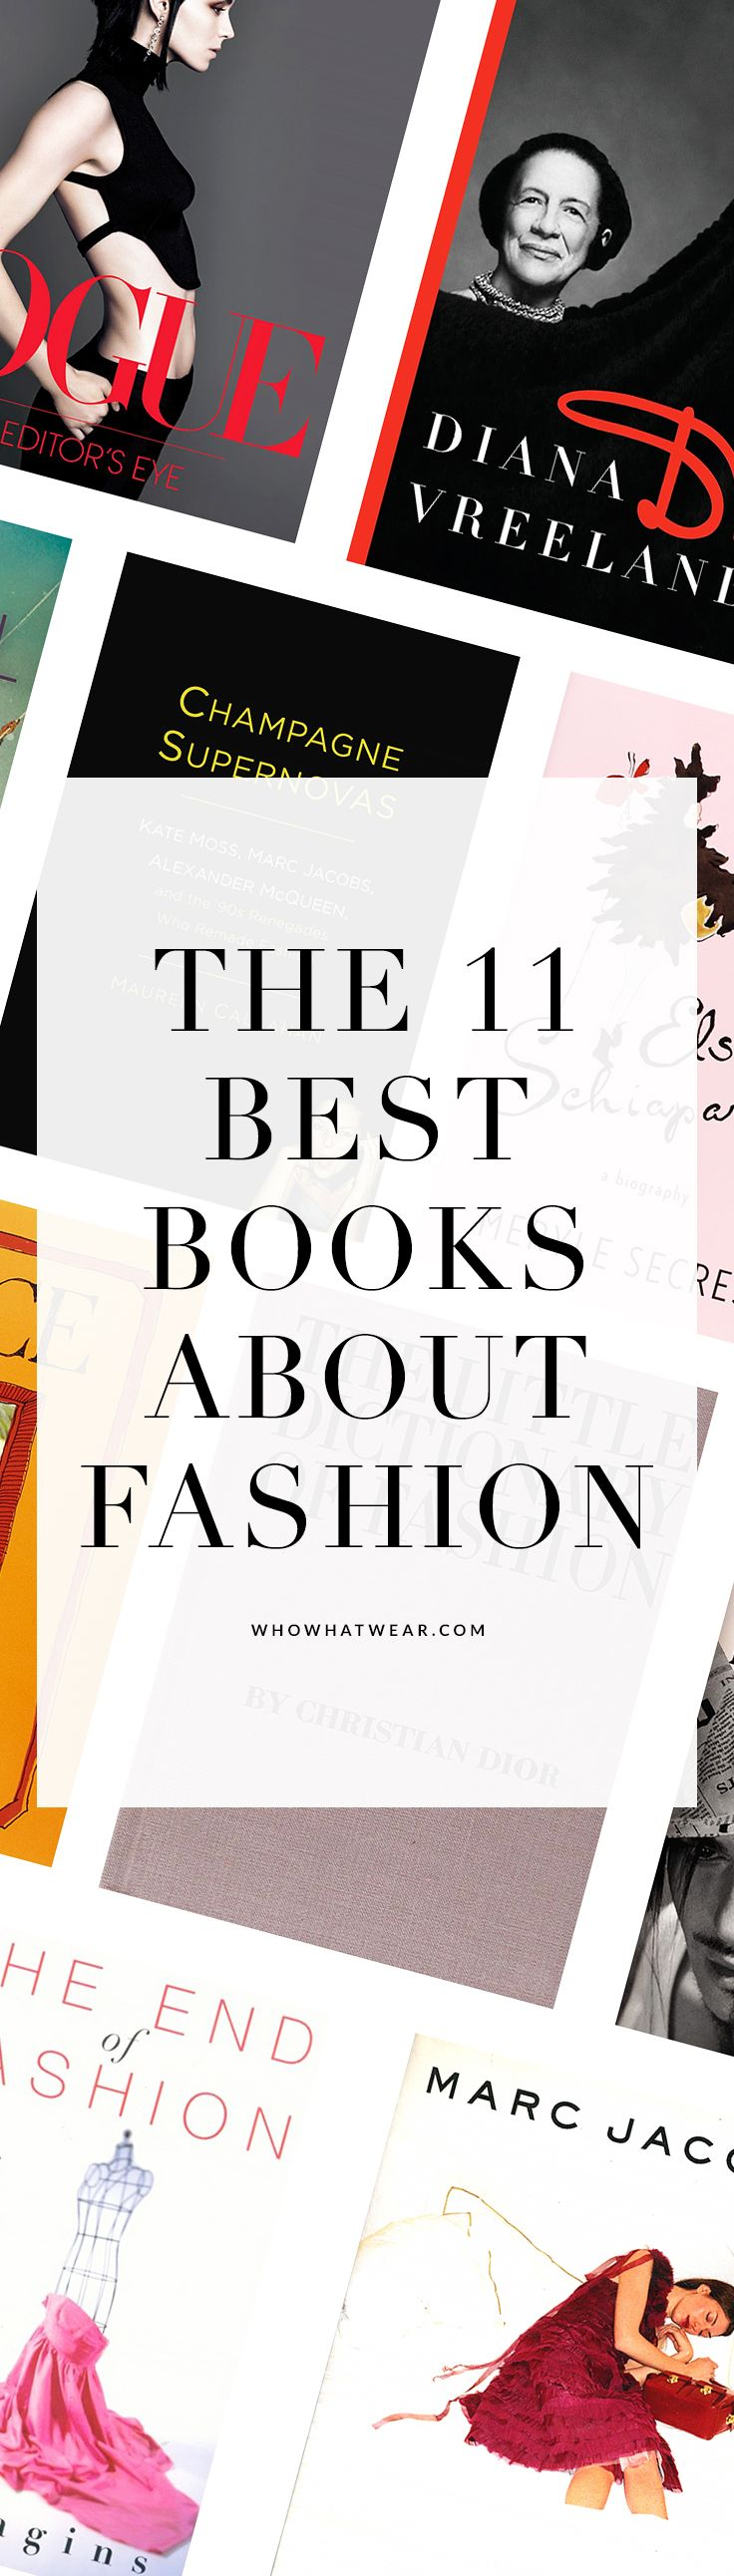 15 Books That Are Crucial To Your Fashion Education Fashion Books Best Fashion Books Books